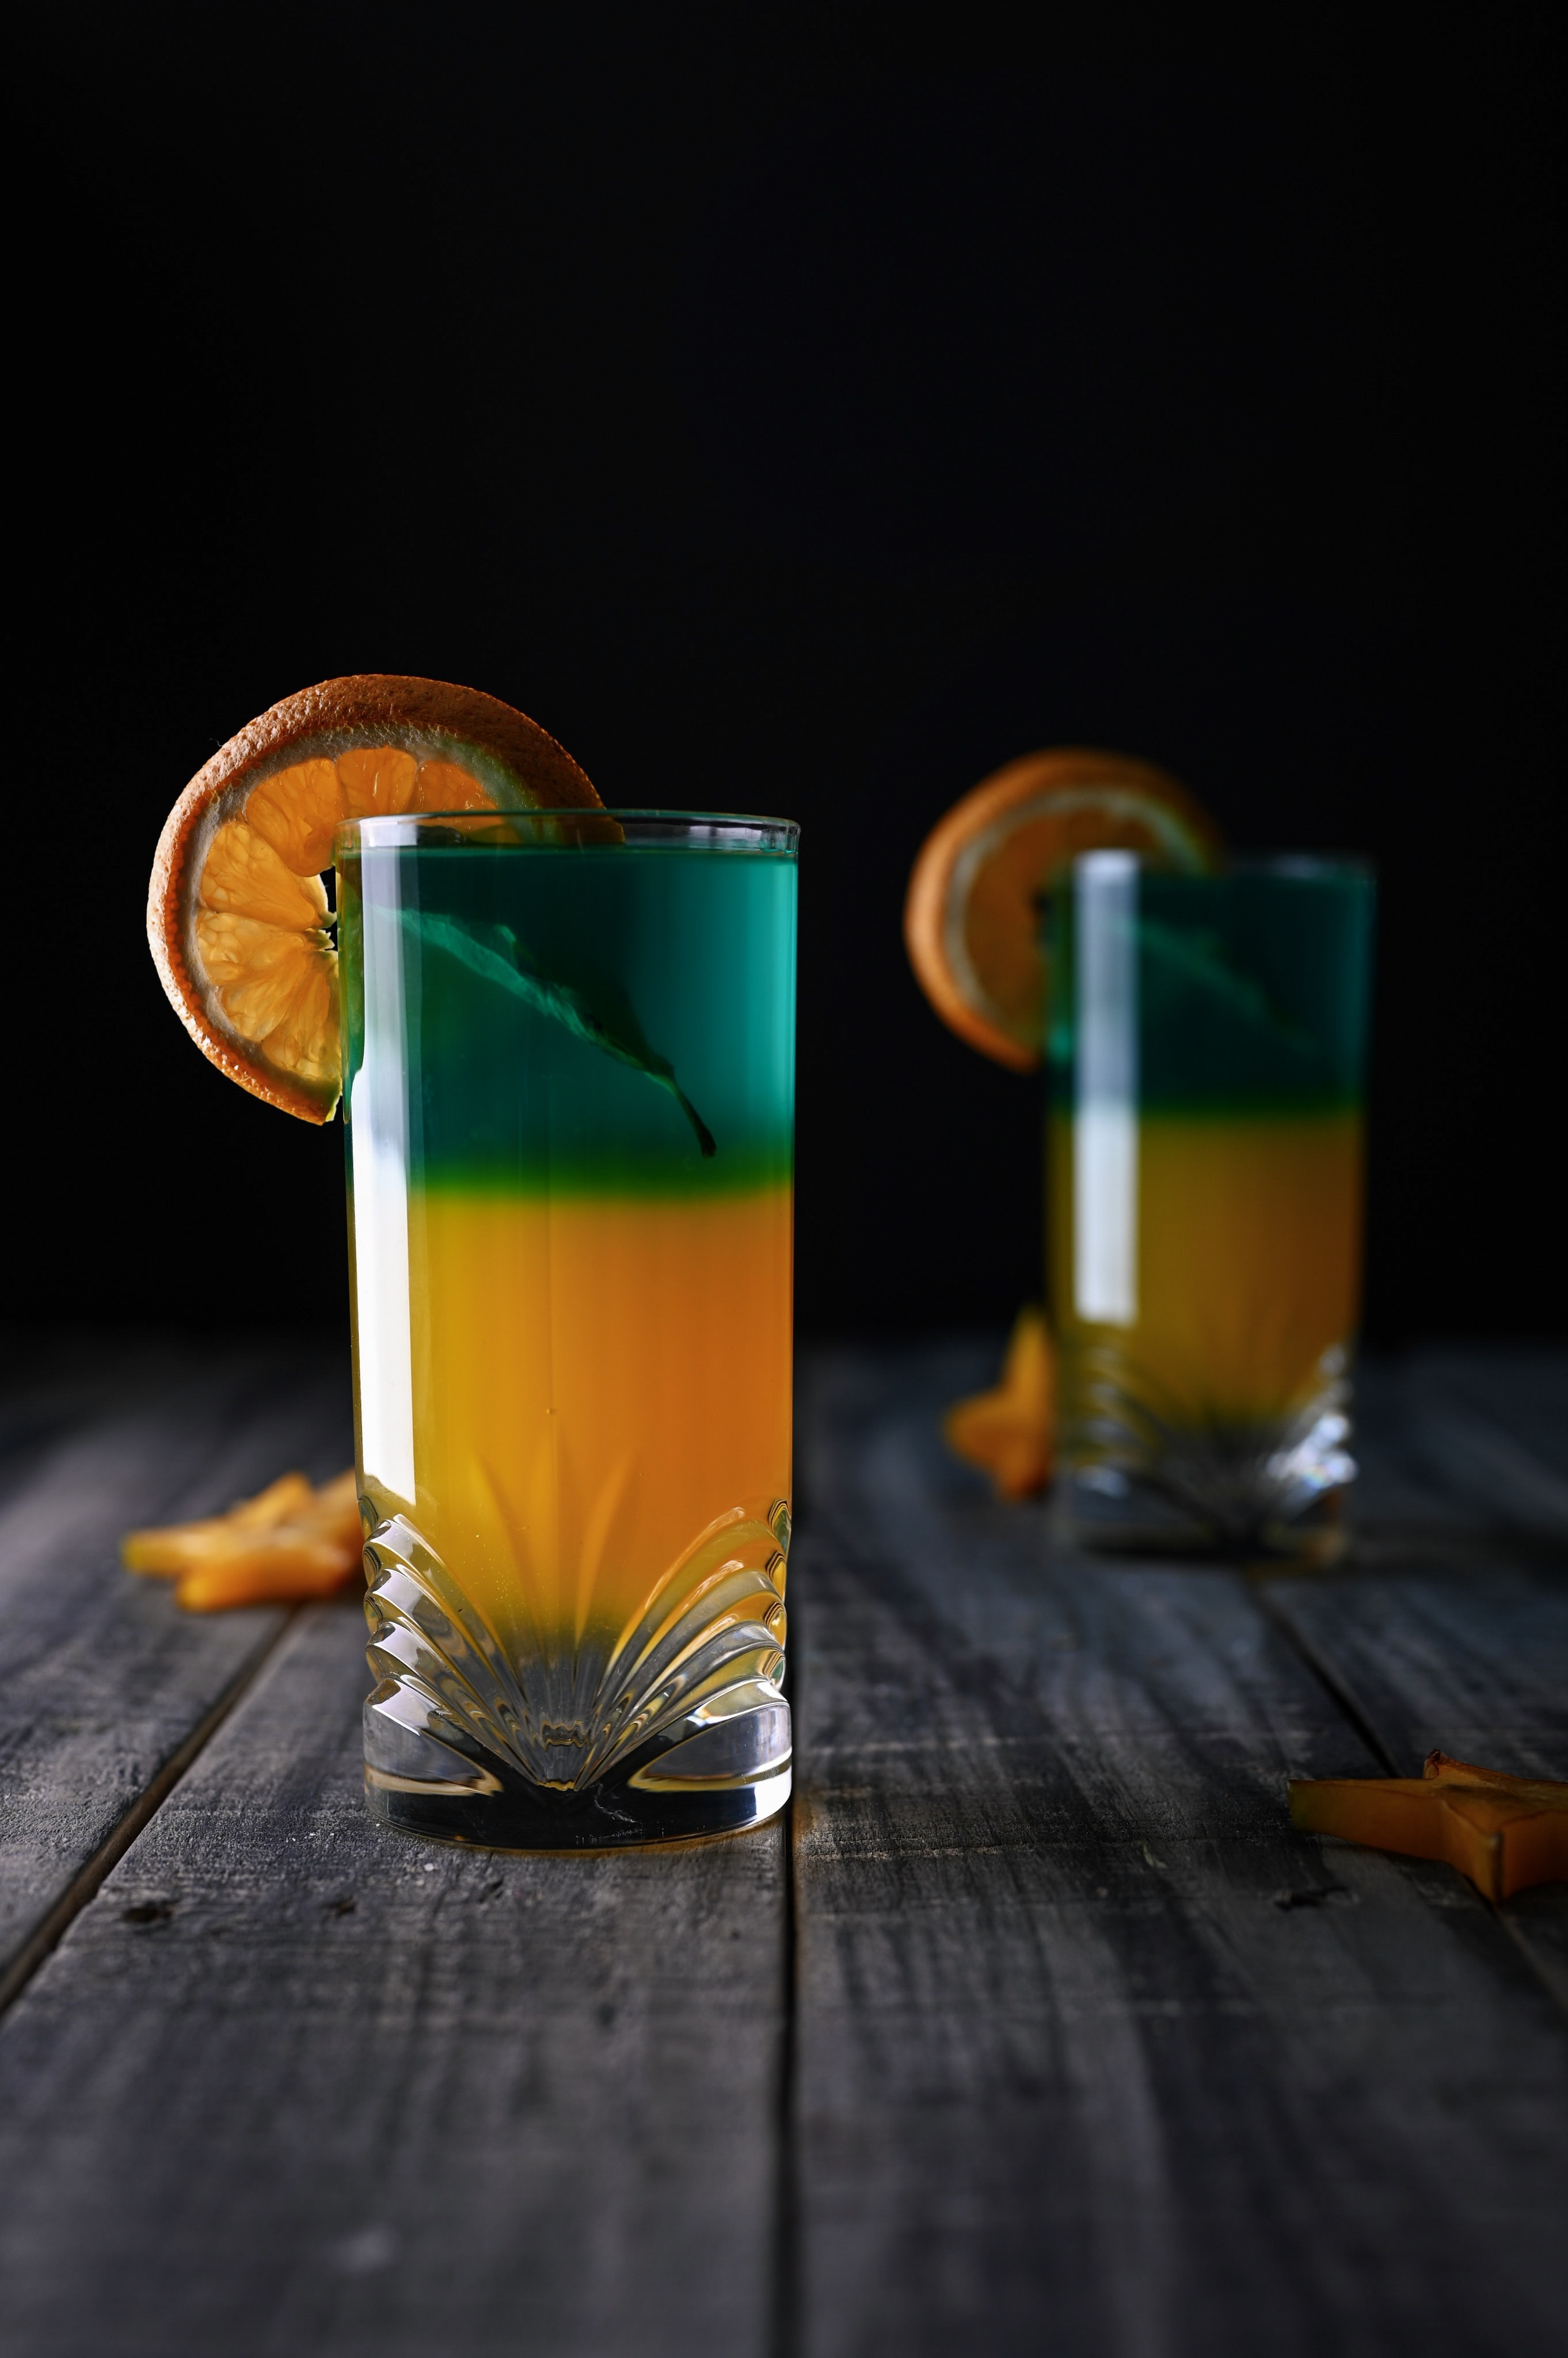 Gallery Image 15 - Orange and blue cocktail